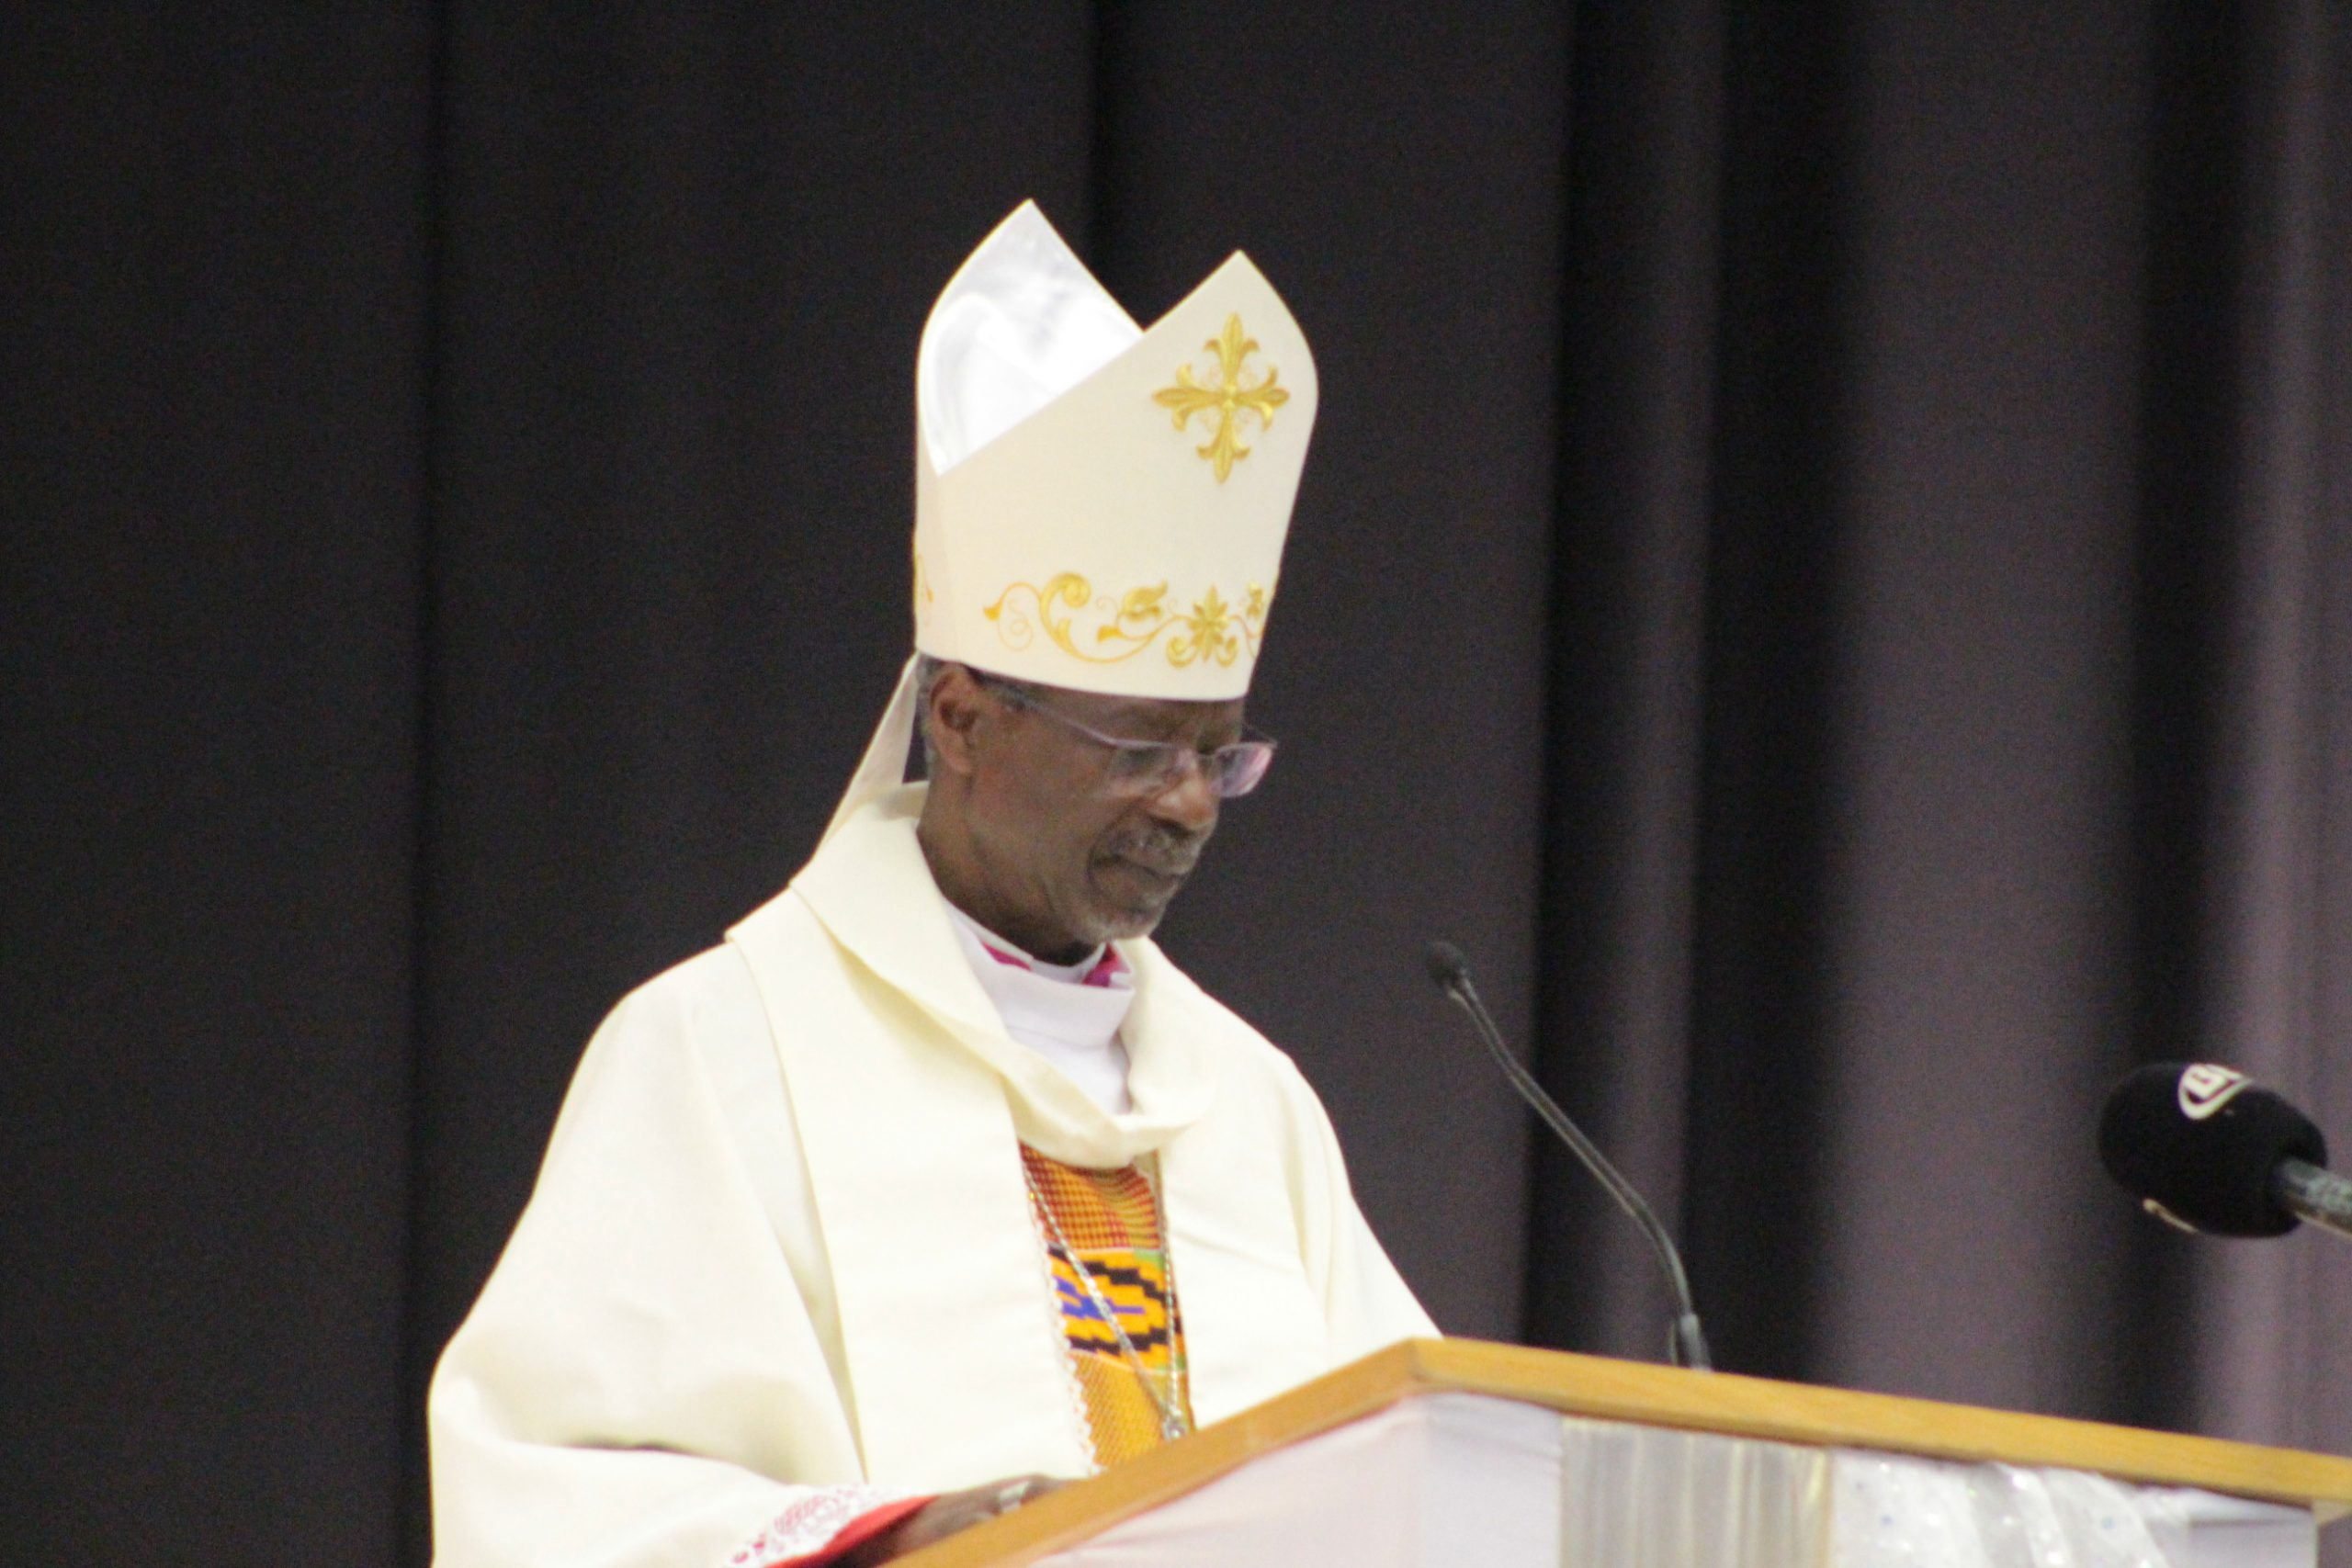 Bishop Frank reflects on the murder of his Friend George Floyd